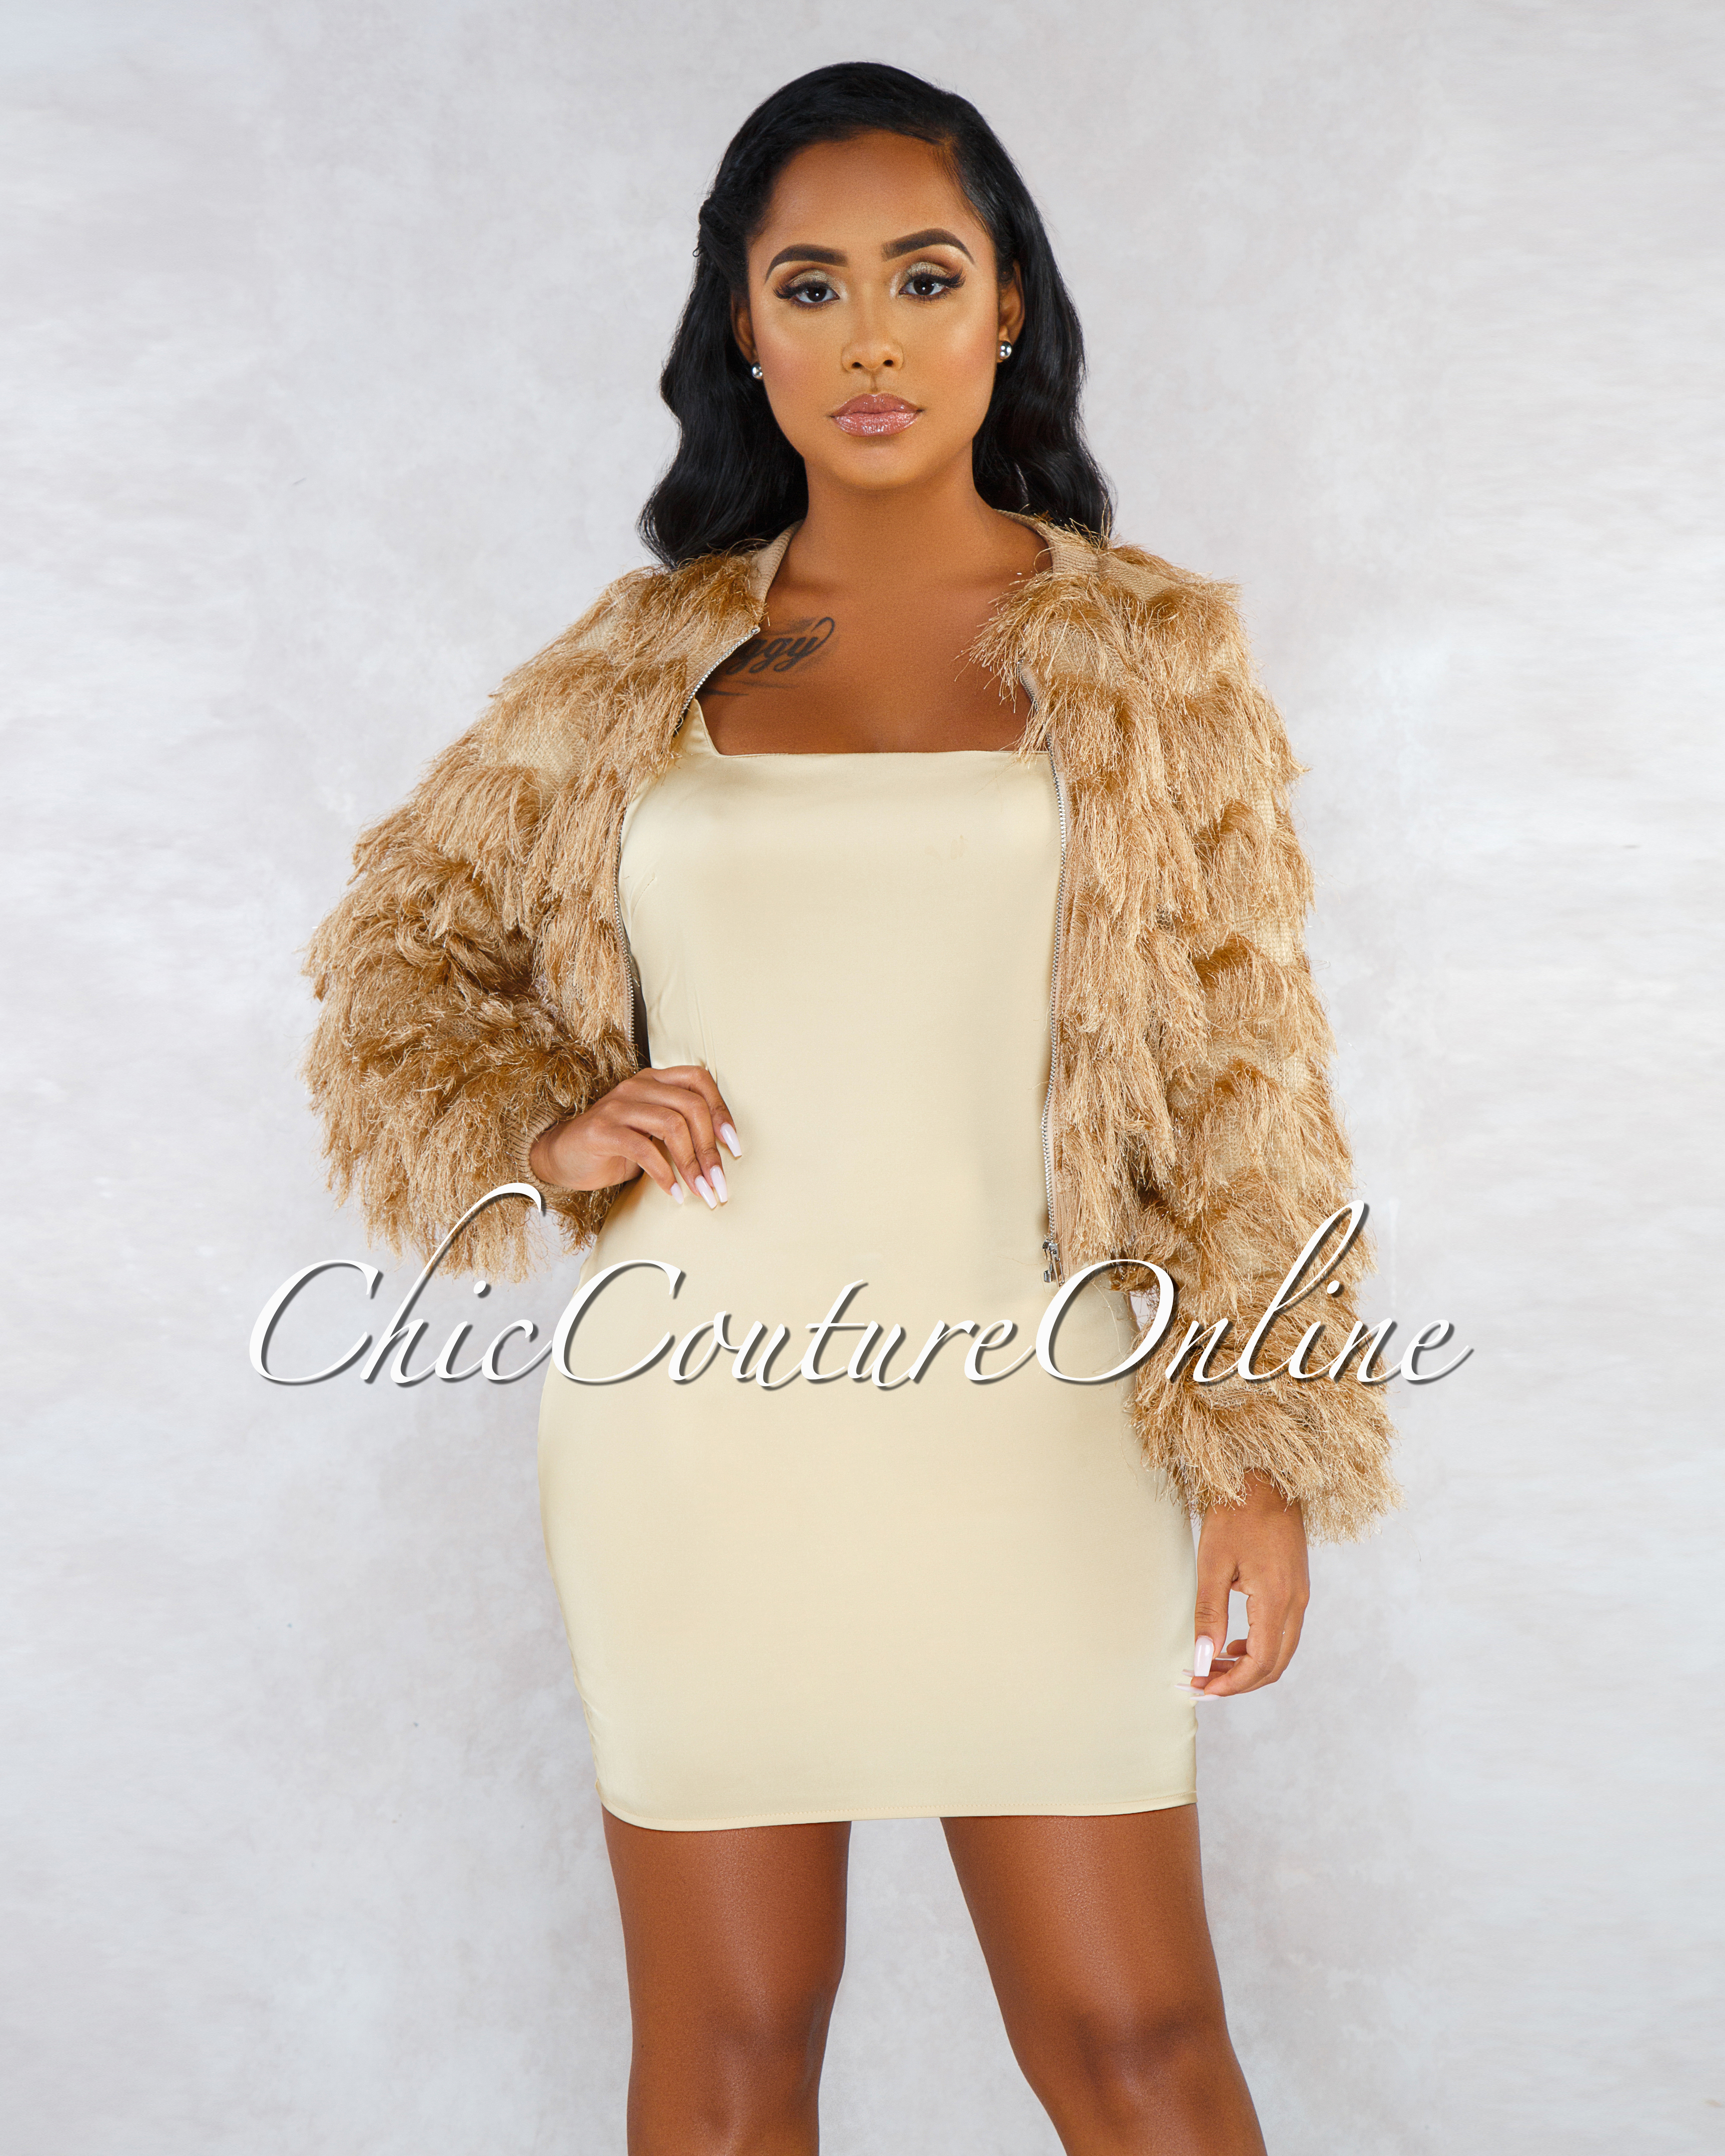 Meek Gold Satin Dress Faux Fur Jacket Set